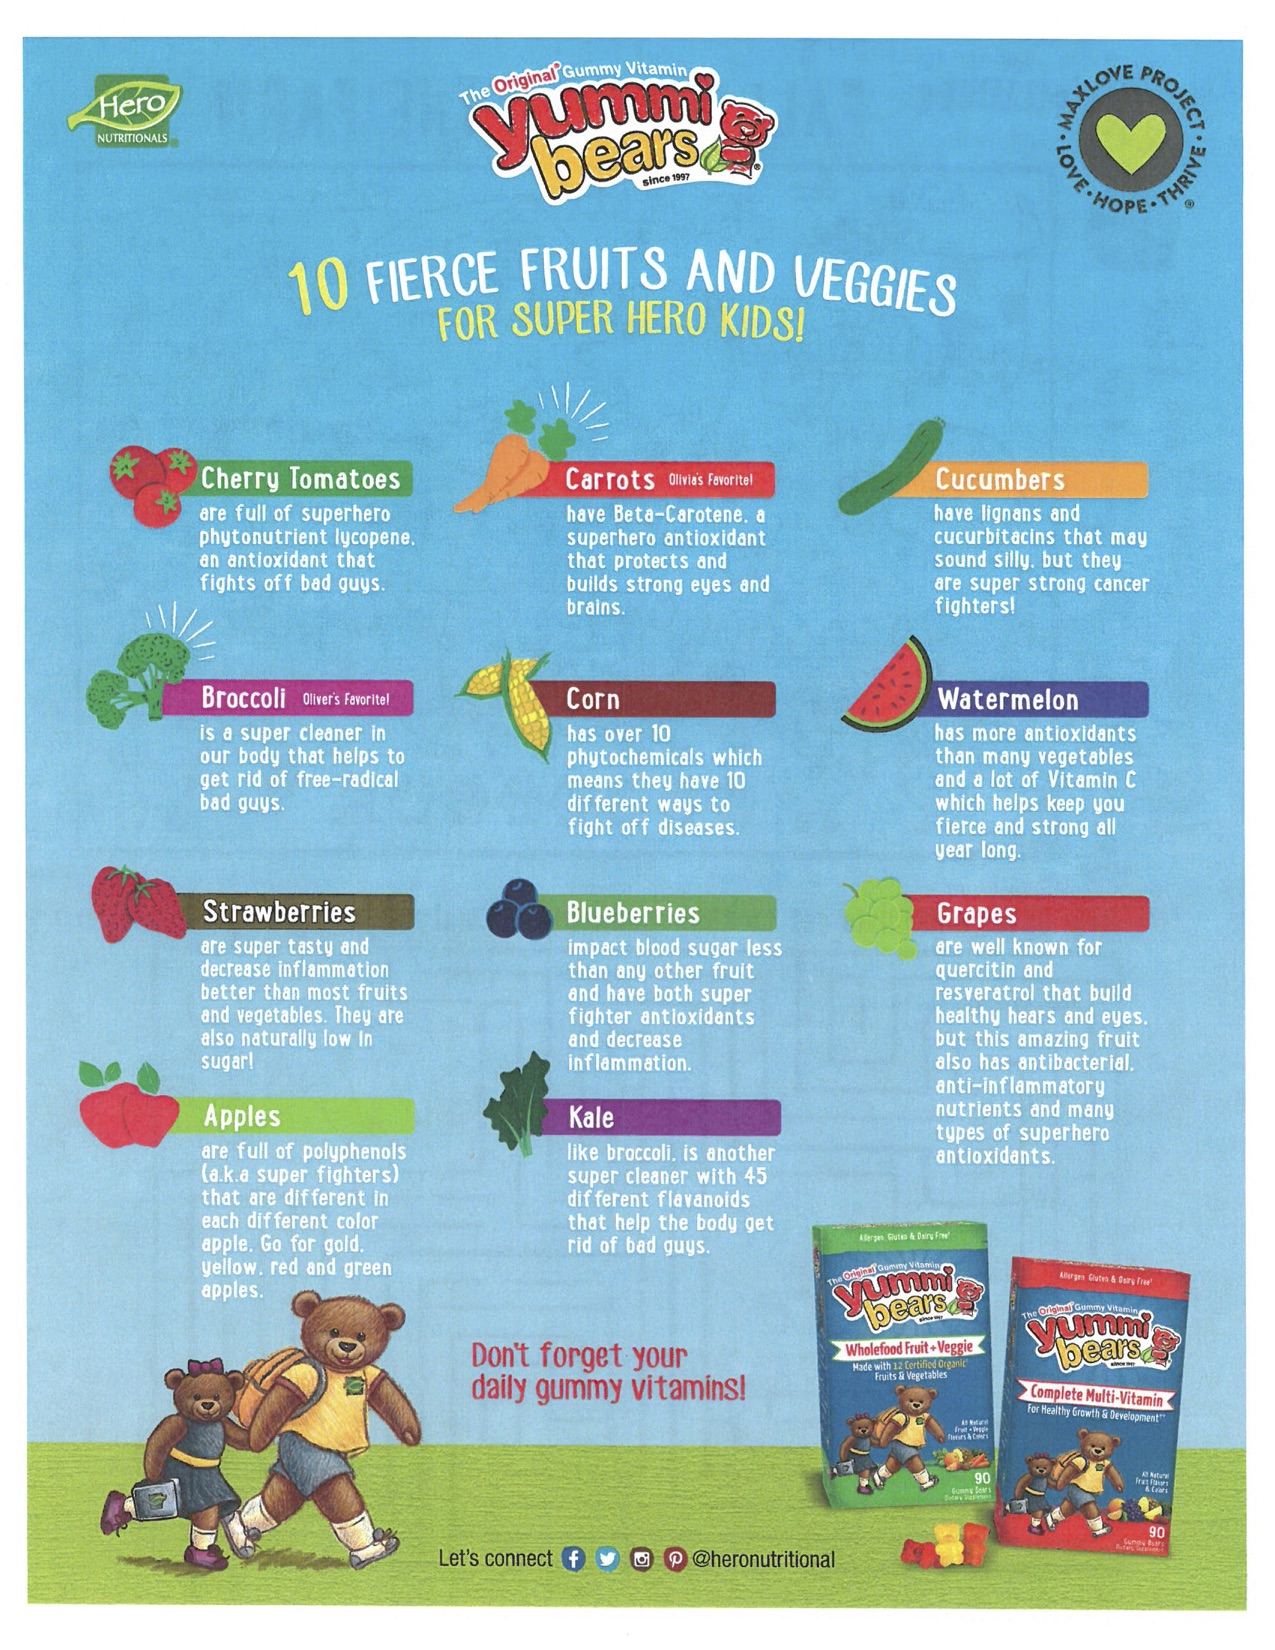 10 Fierce Foods and Veggies Branded Hand out.jpg